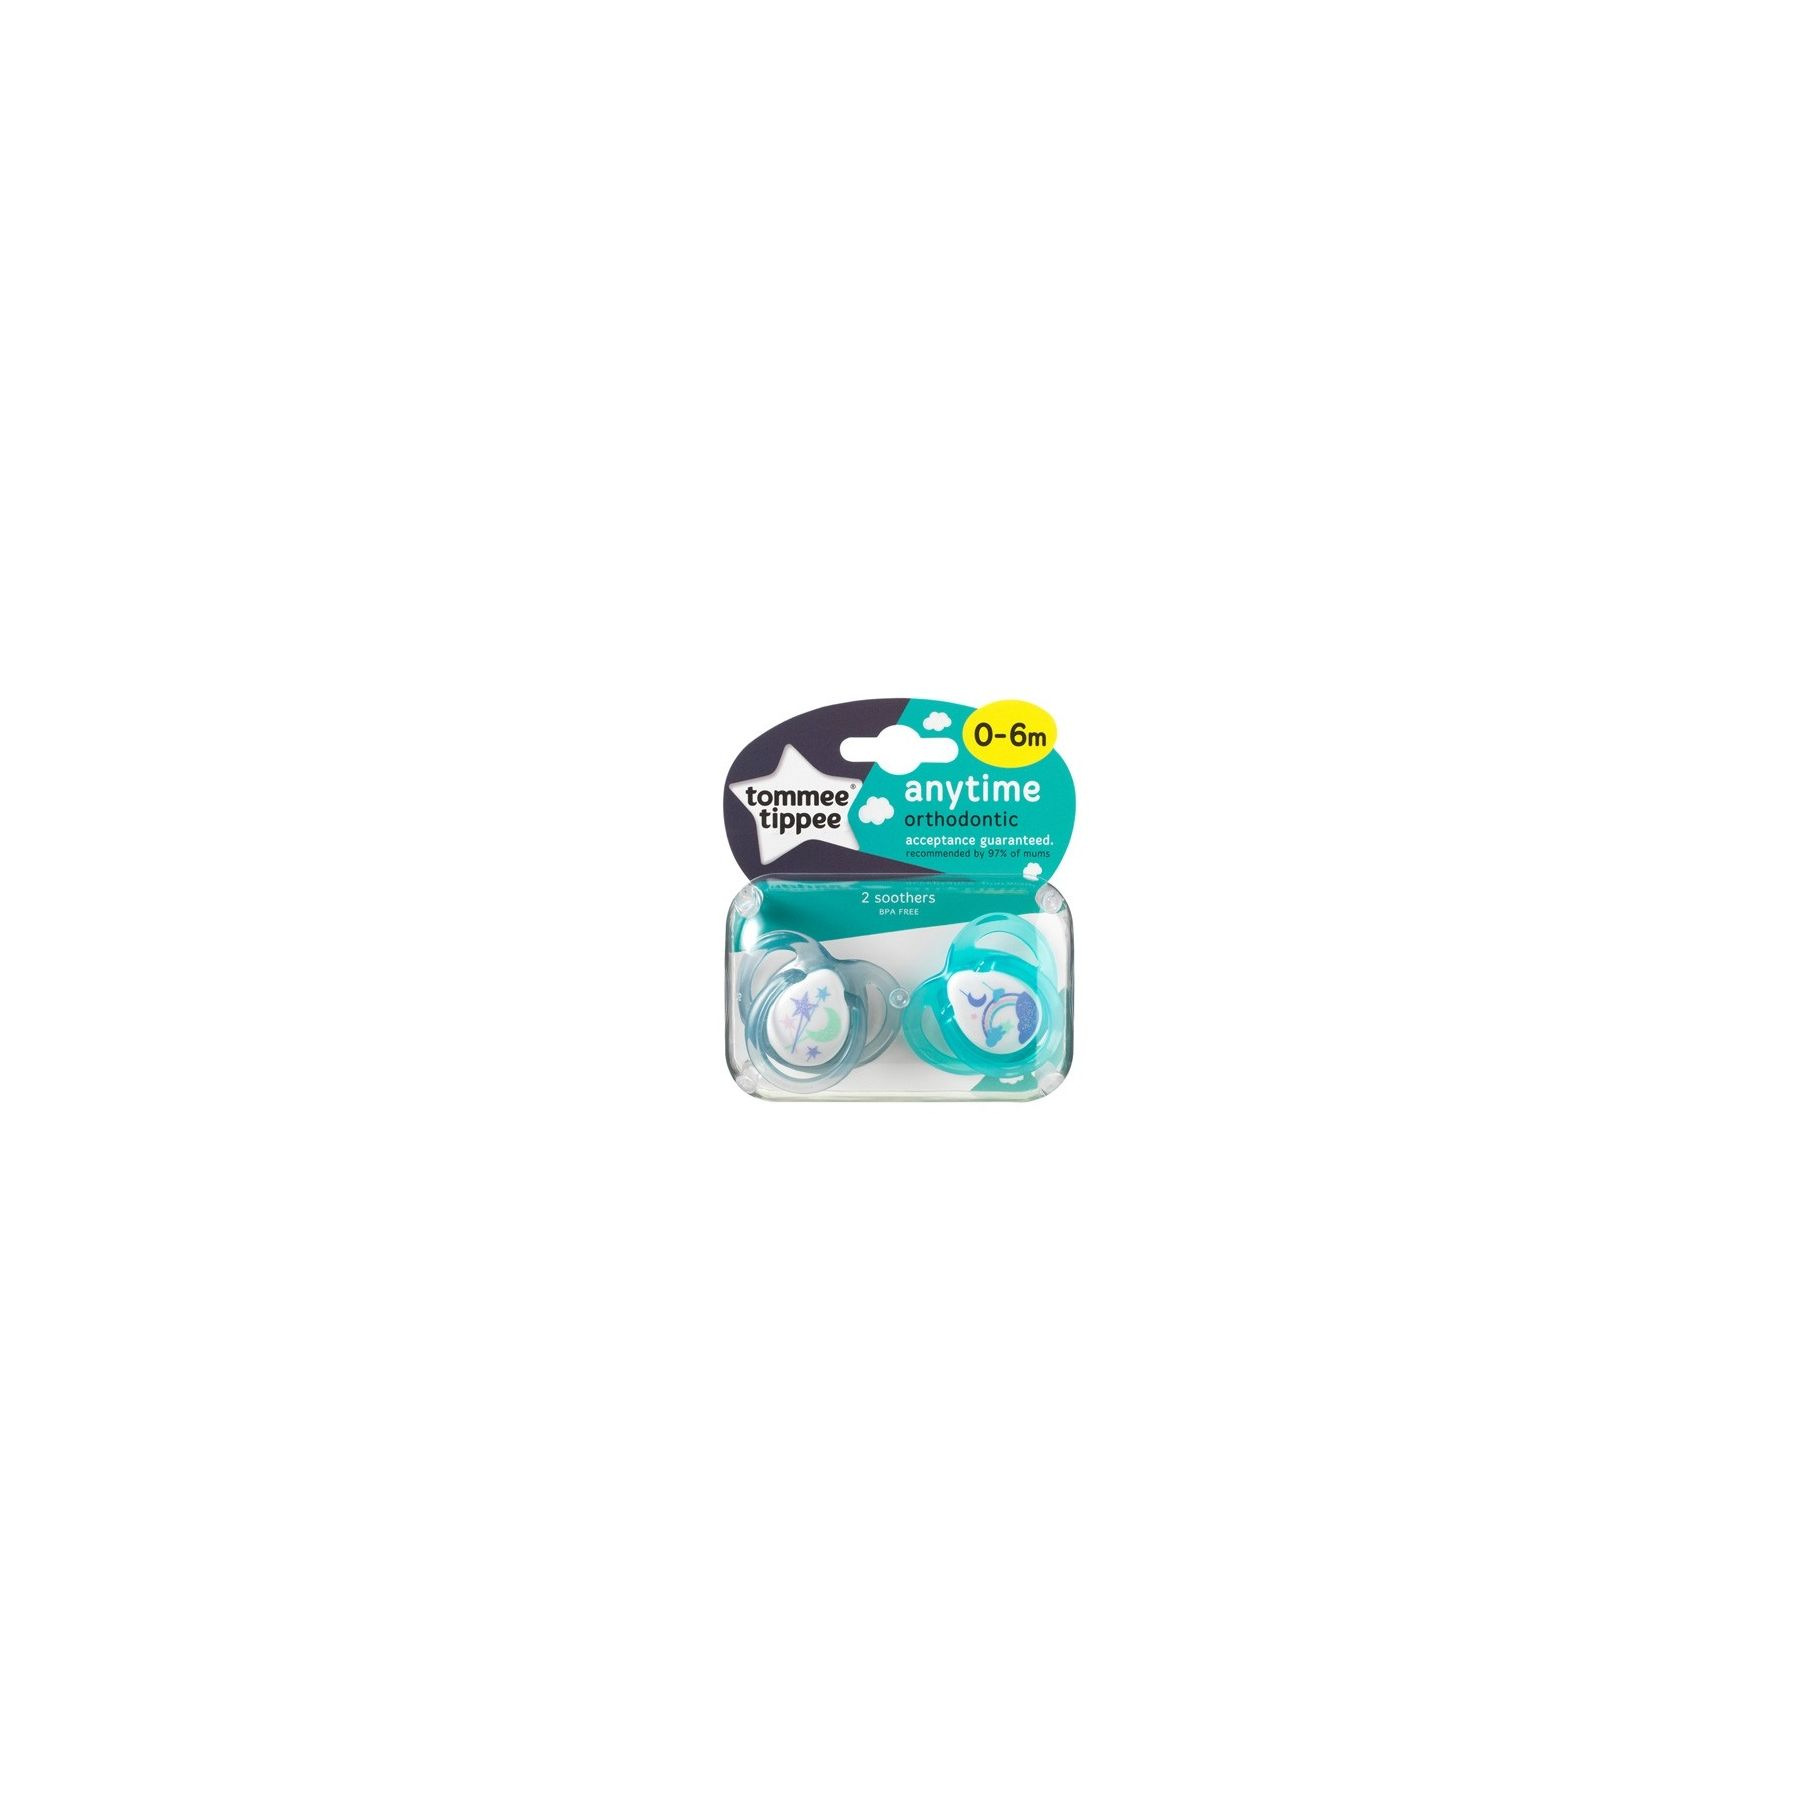 Sucettes classiques Any Time 0-6 mois Gris / Vert Tommee Tippee